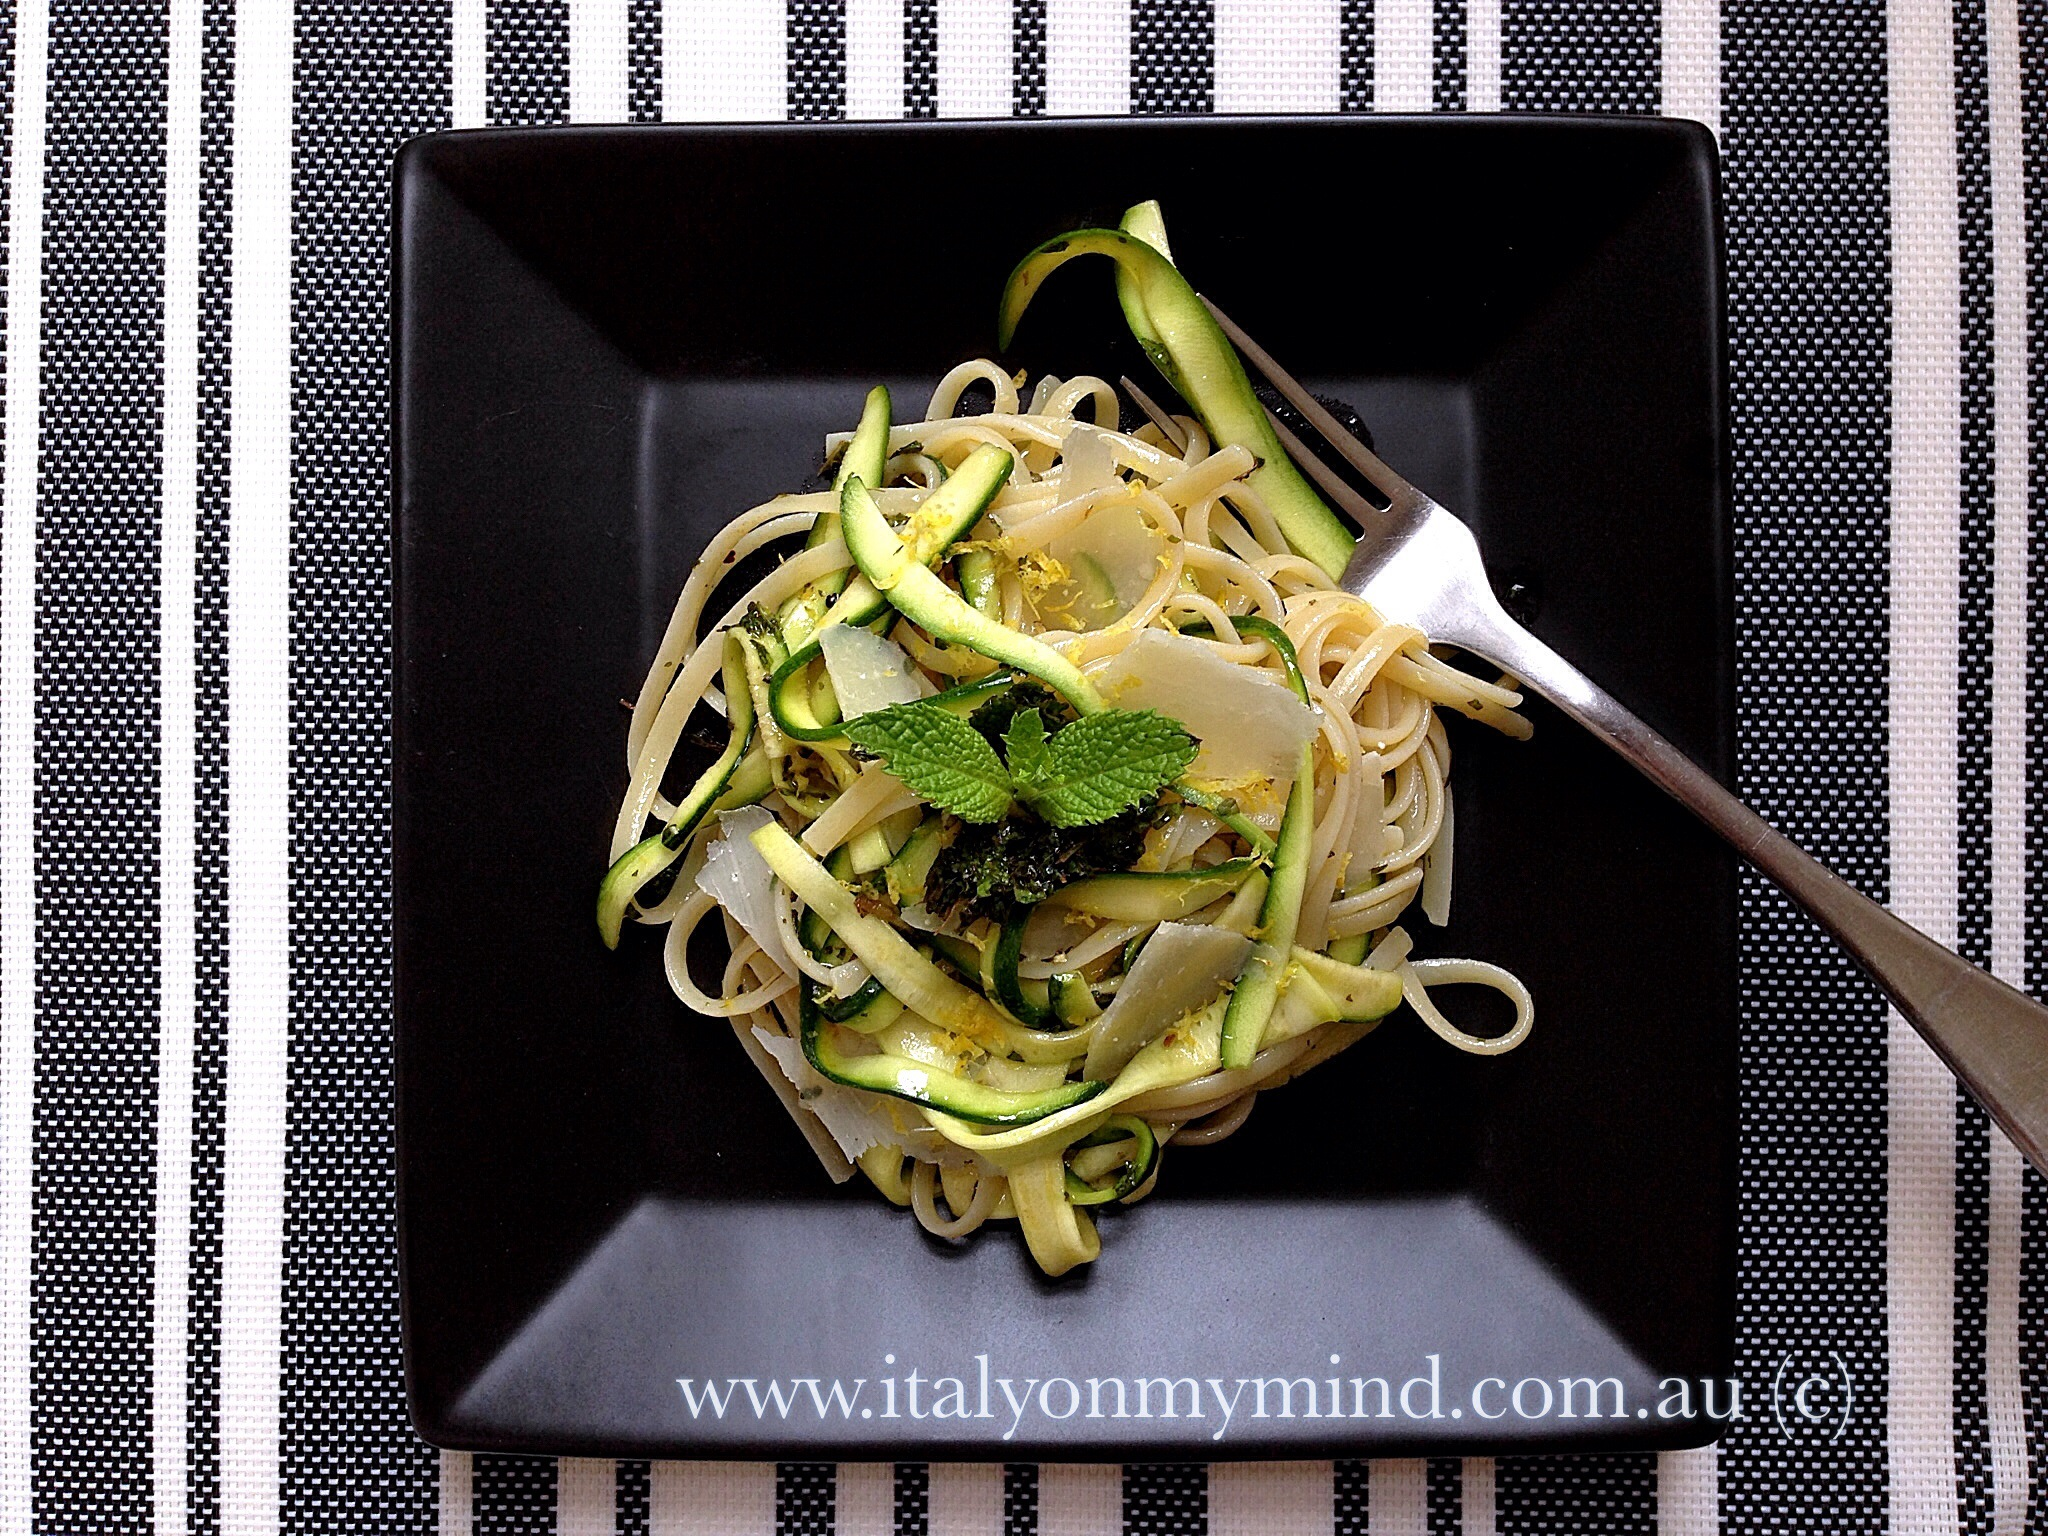 Linguine with zucchini ribbons, lemon and mint